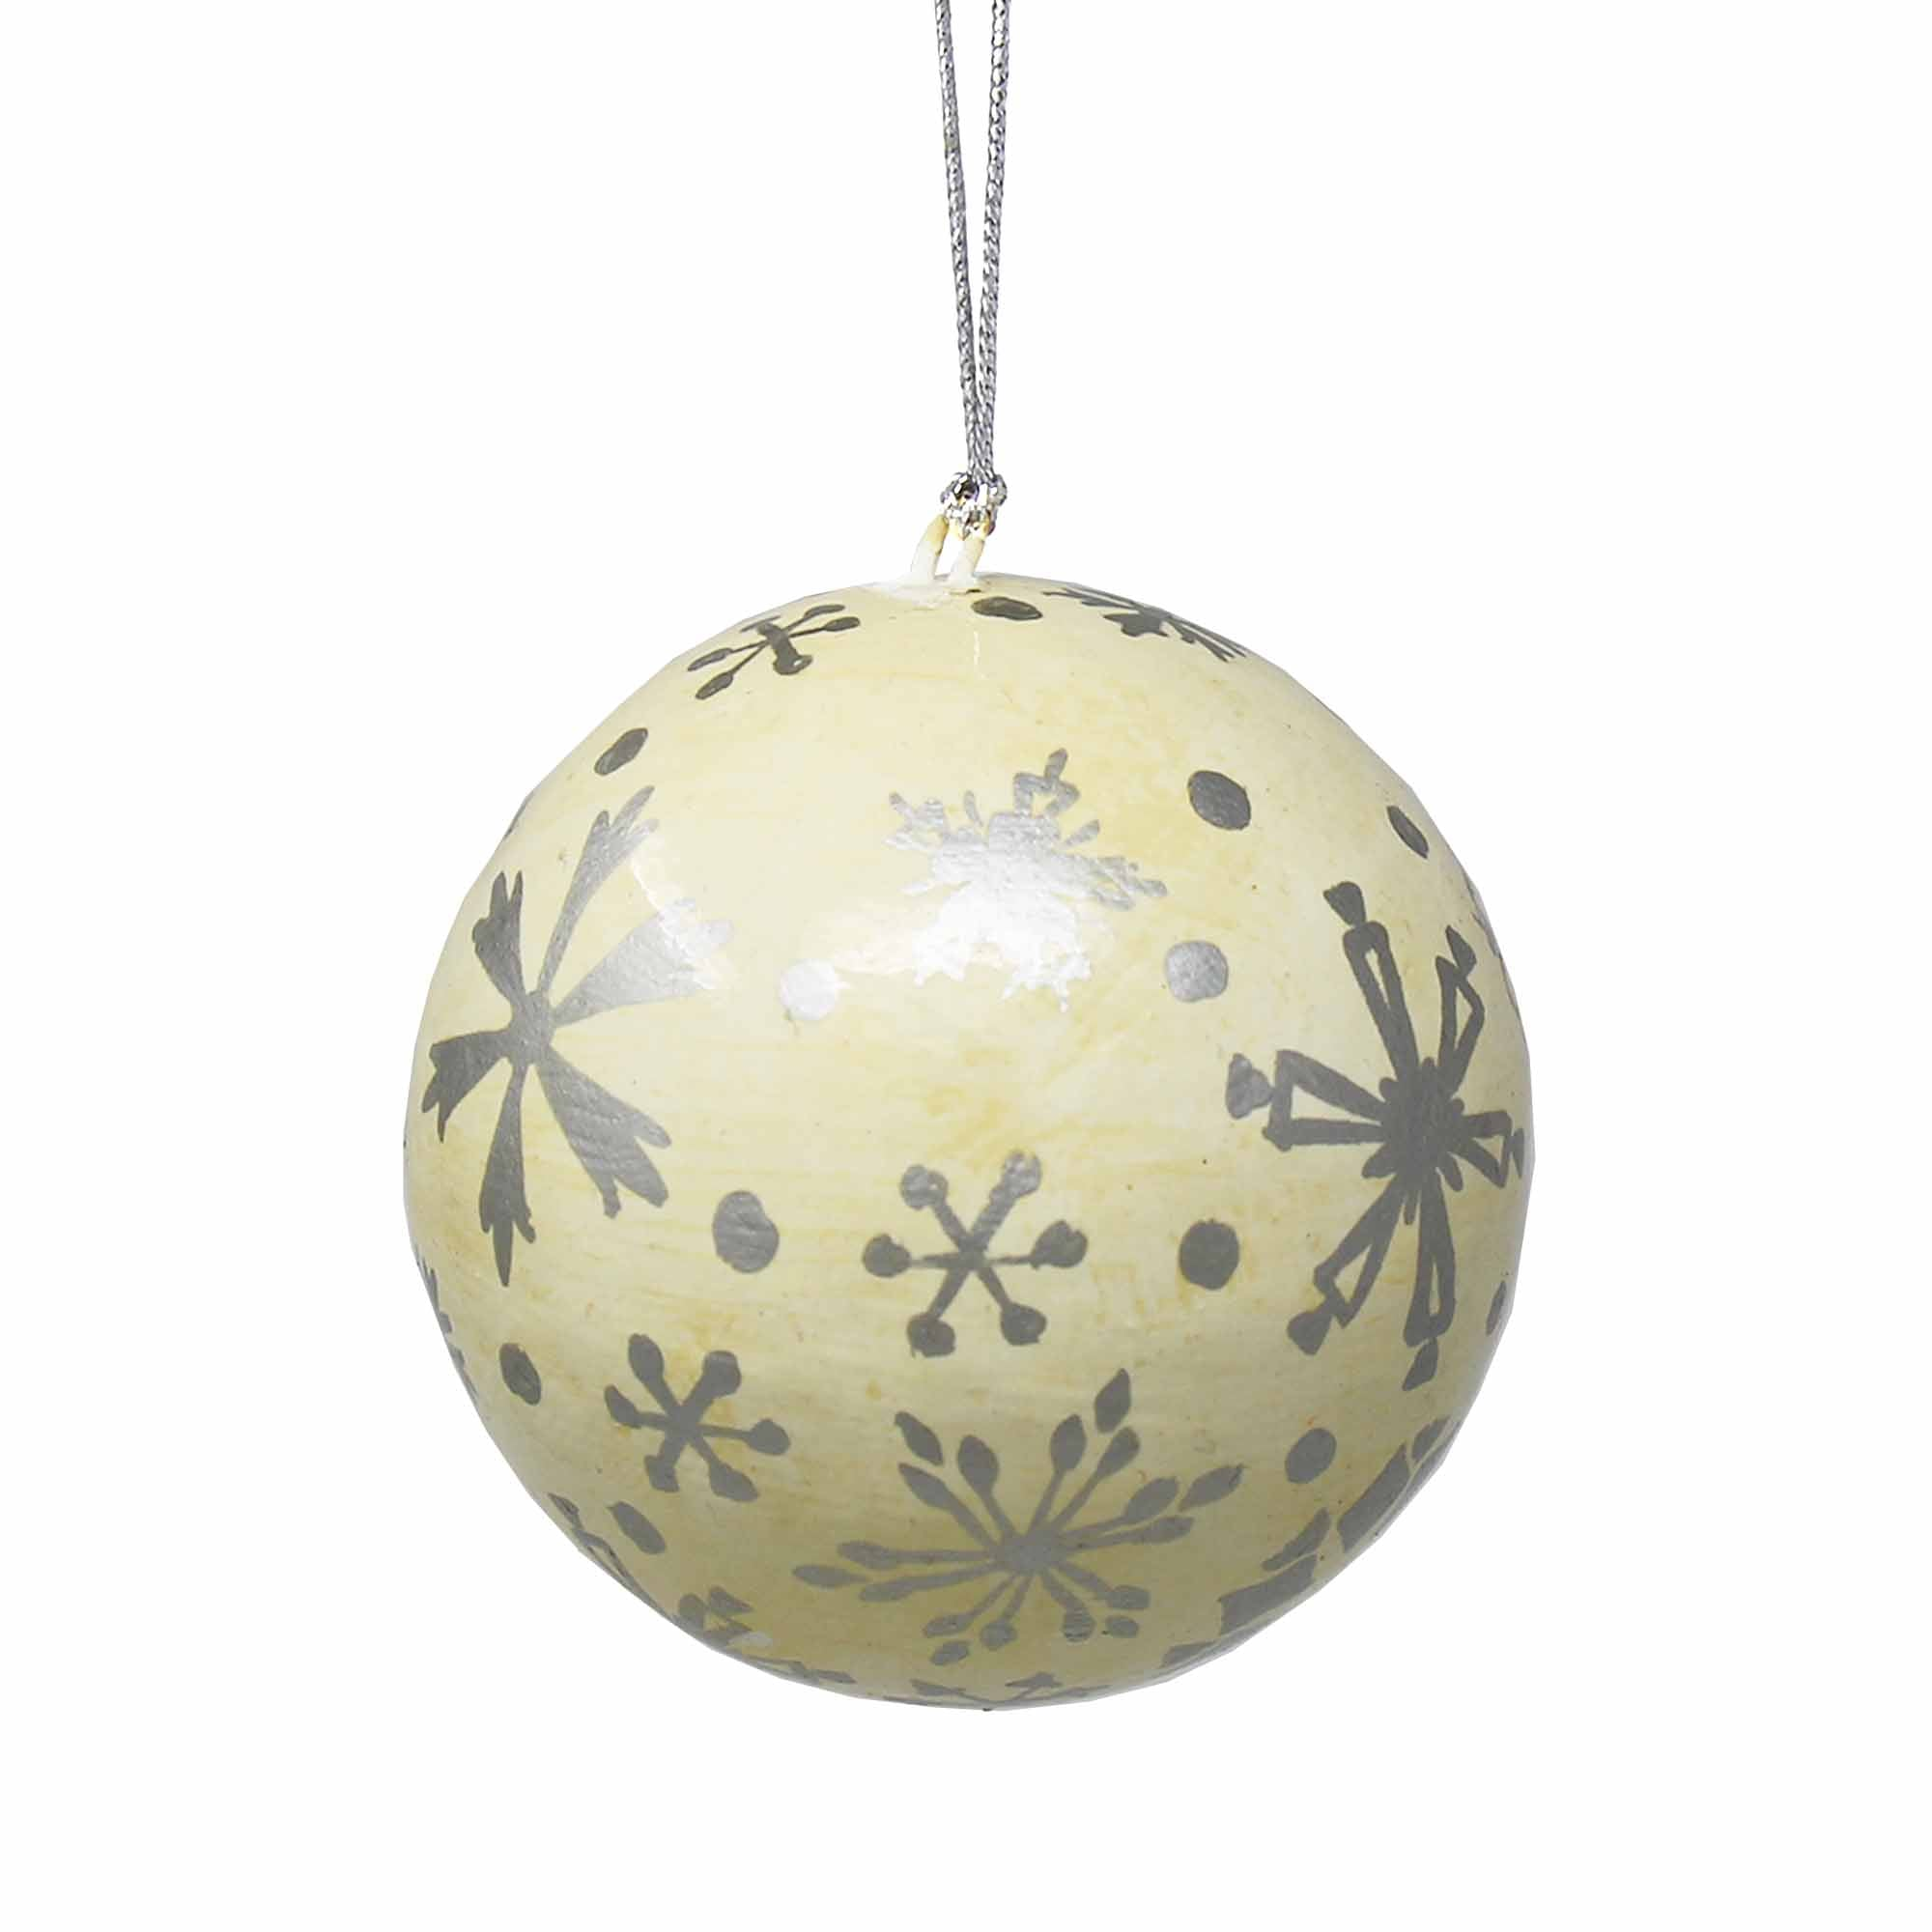 Handpainted Silver Snowflakes and Dots Papier Mache Hanging Ball Ornament